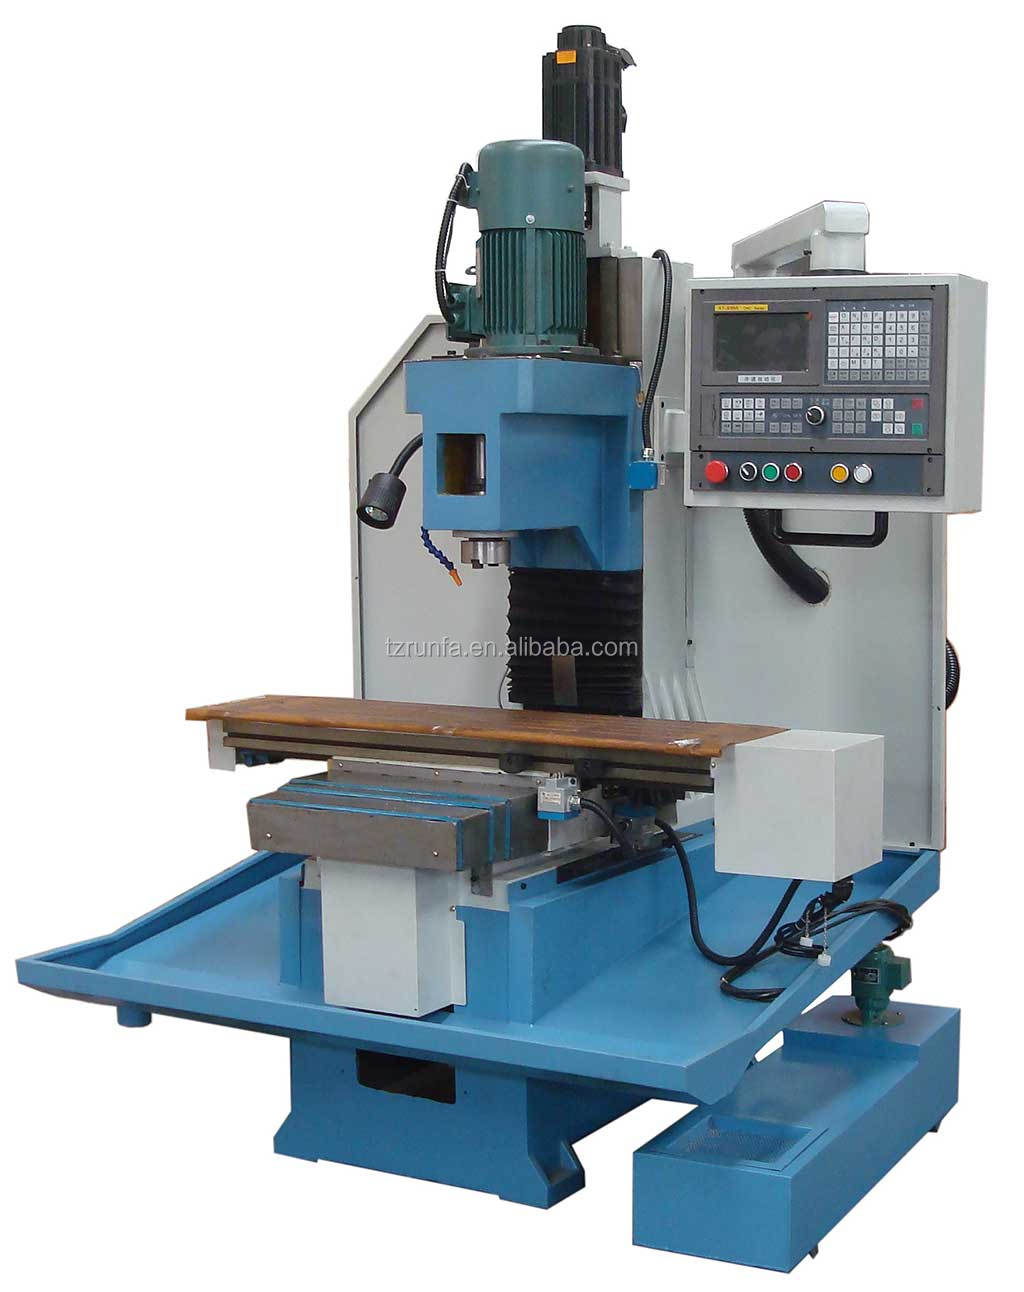 100 Bench Cnc Milling Machine 318 Best Milling